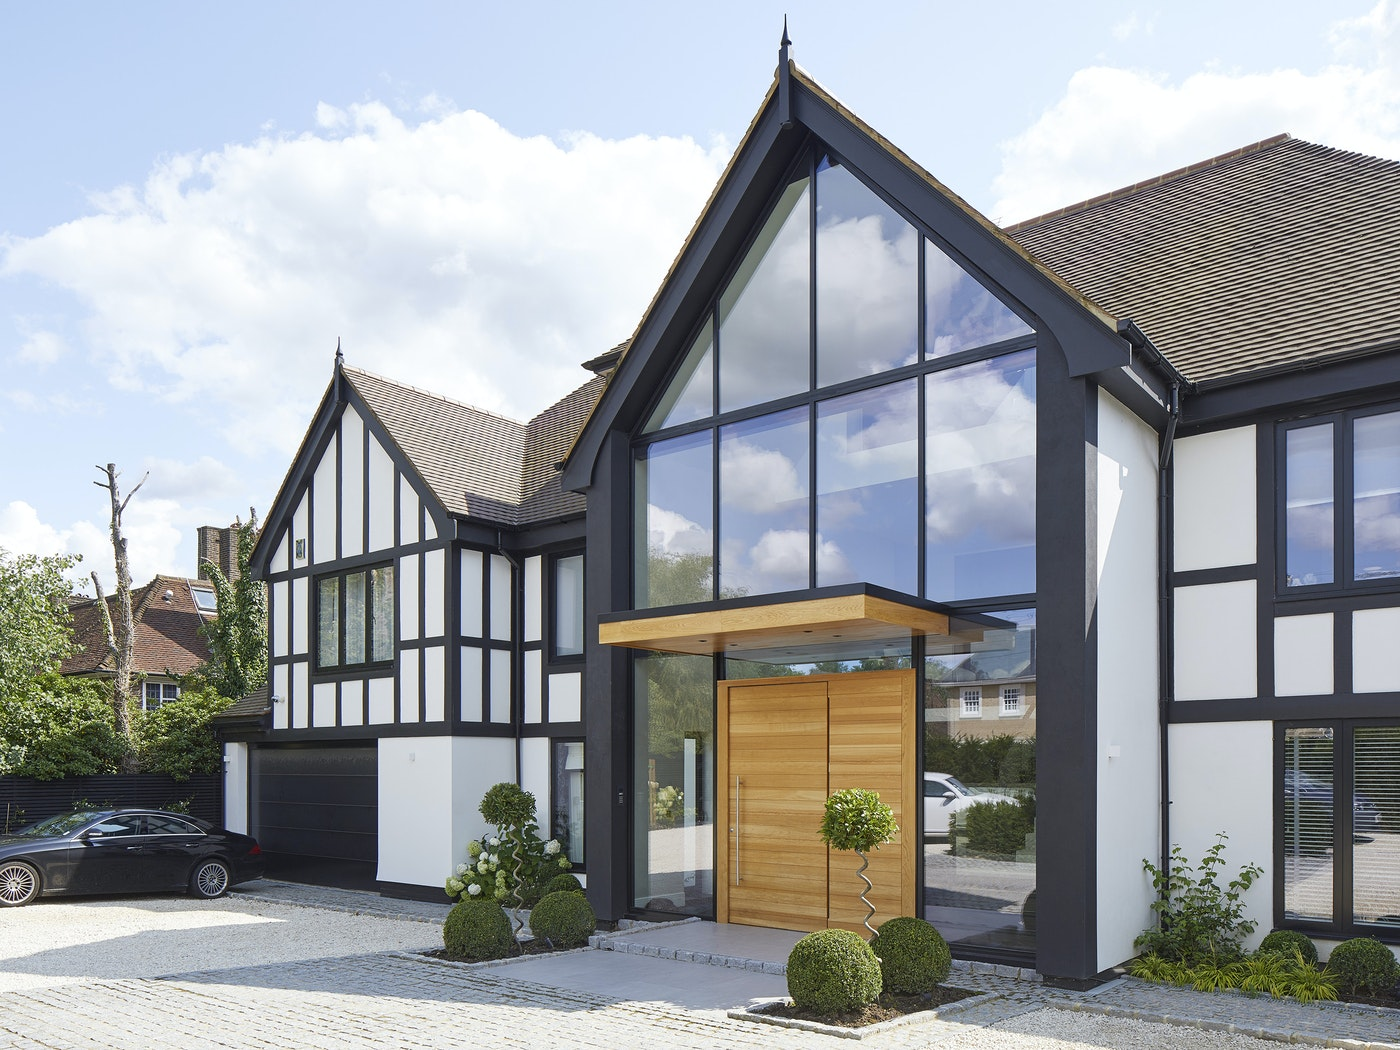 Traditional property with a parma e98 flush pivot door in european oak